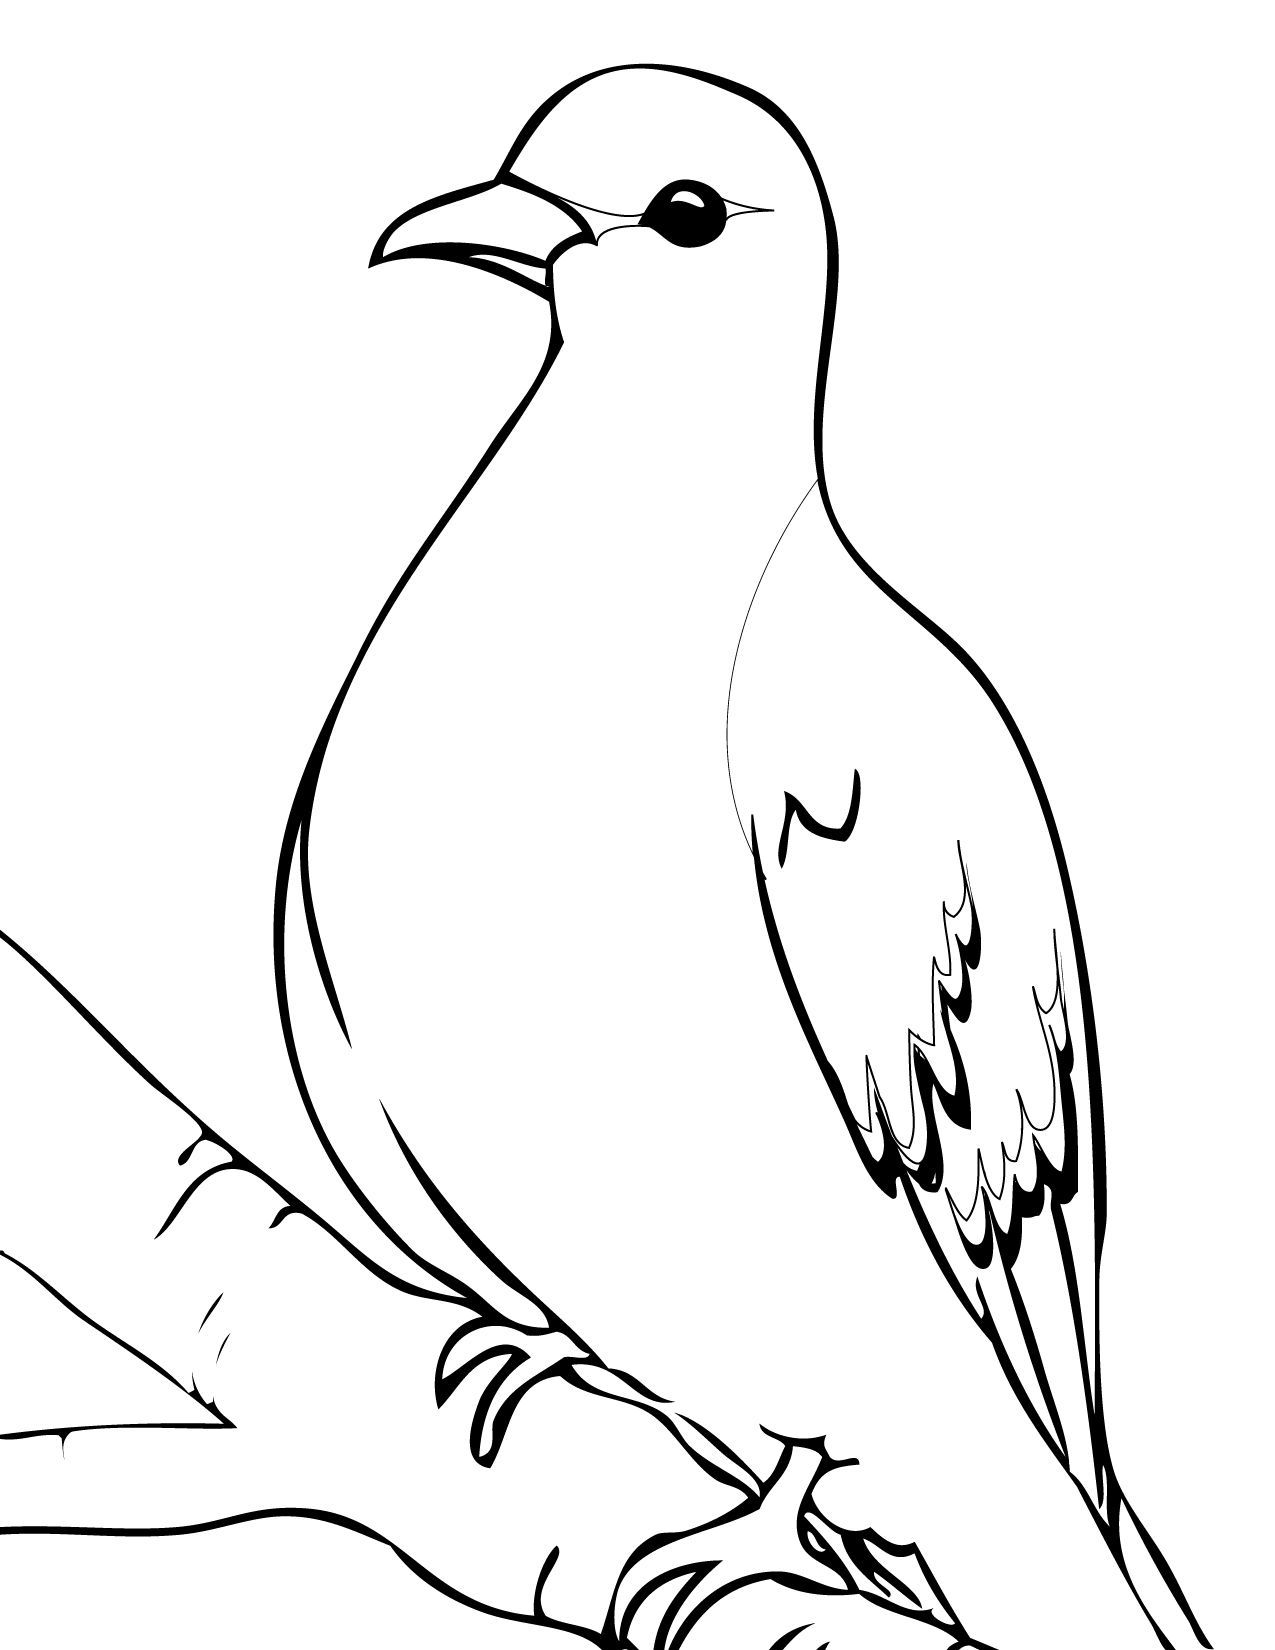 Coloring Page In 2021 Bird Coloring Page Bird Coloring Bird Coloring Pages